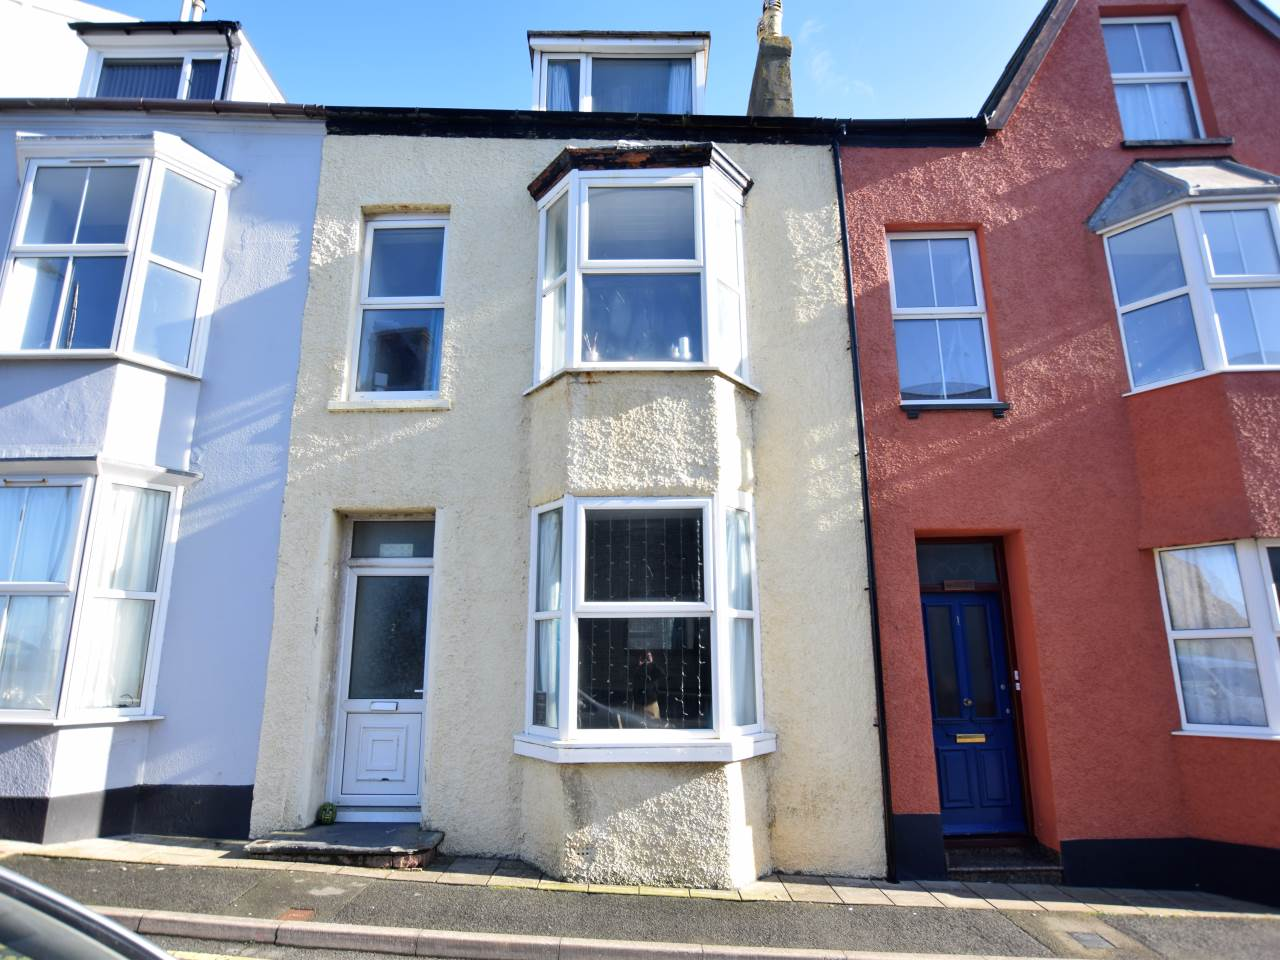 5 bed house to rent in Bryn Y Mor Terrace, Aberystwyth  - Property Image 1